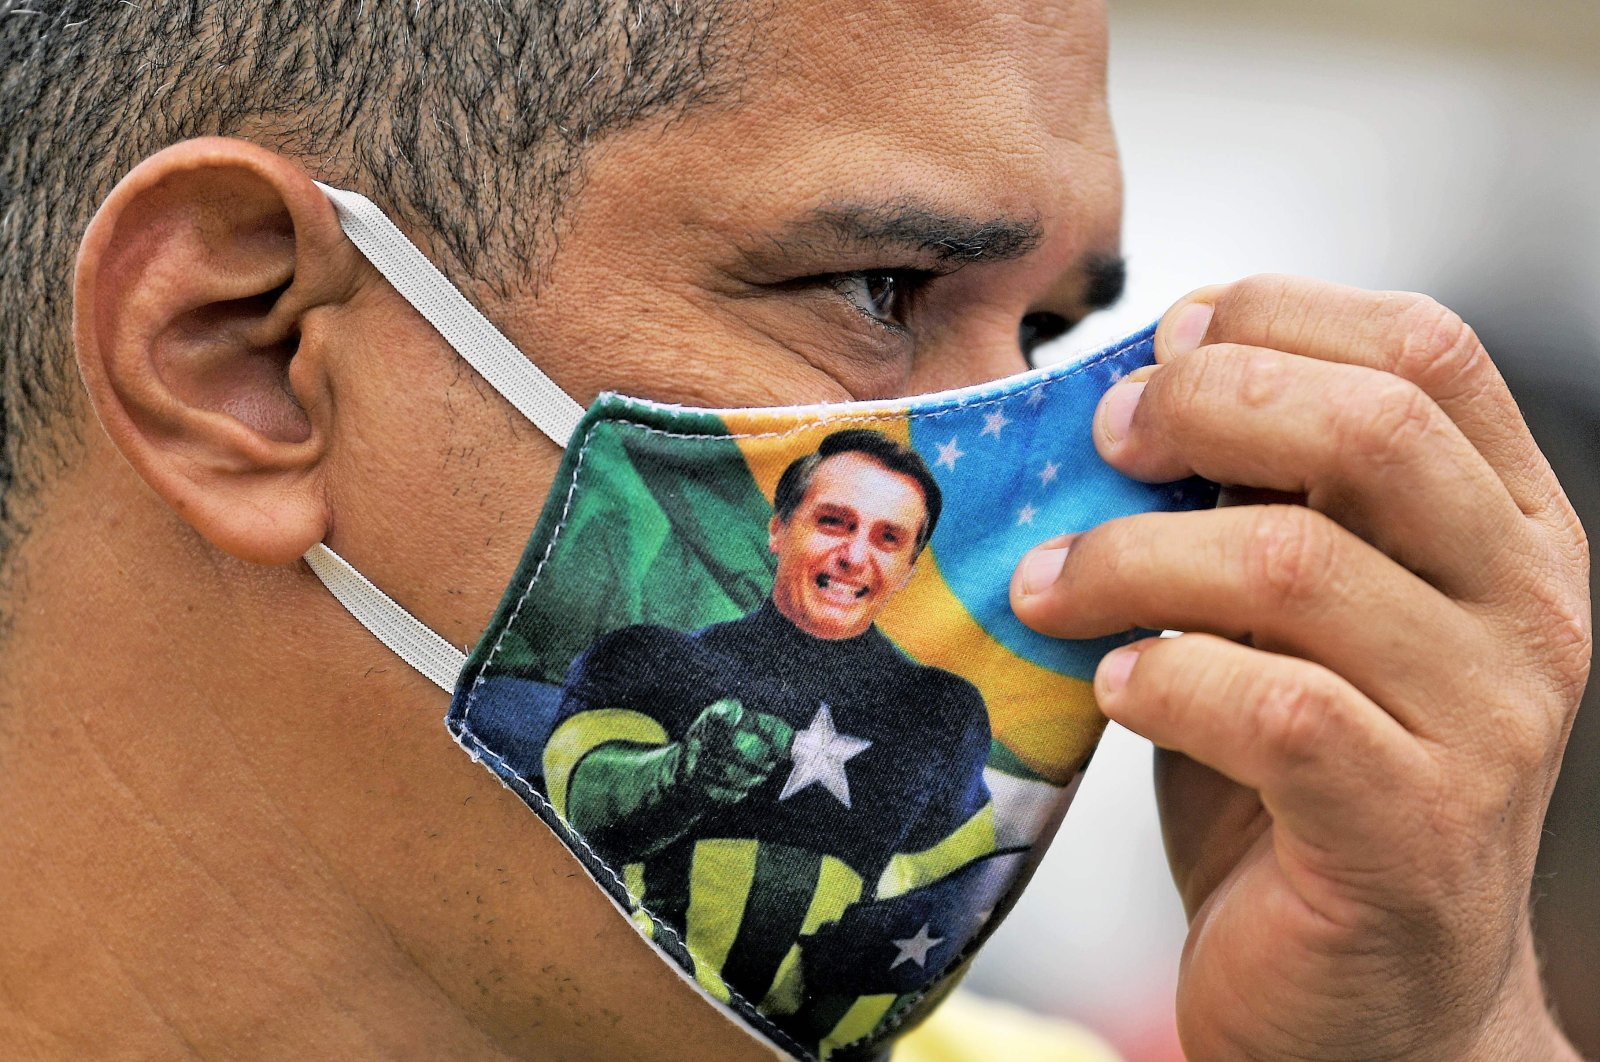 A supporter of President Jair Bolsonaro wears a face mask with Bolsonaro's image during a demonstration at Copacabana beach in Rio de Janeiro, Brazil, on June 7, 2020. (AFP Photo)